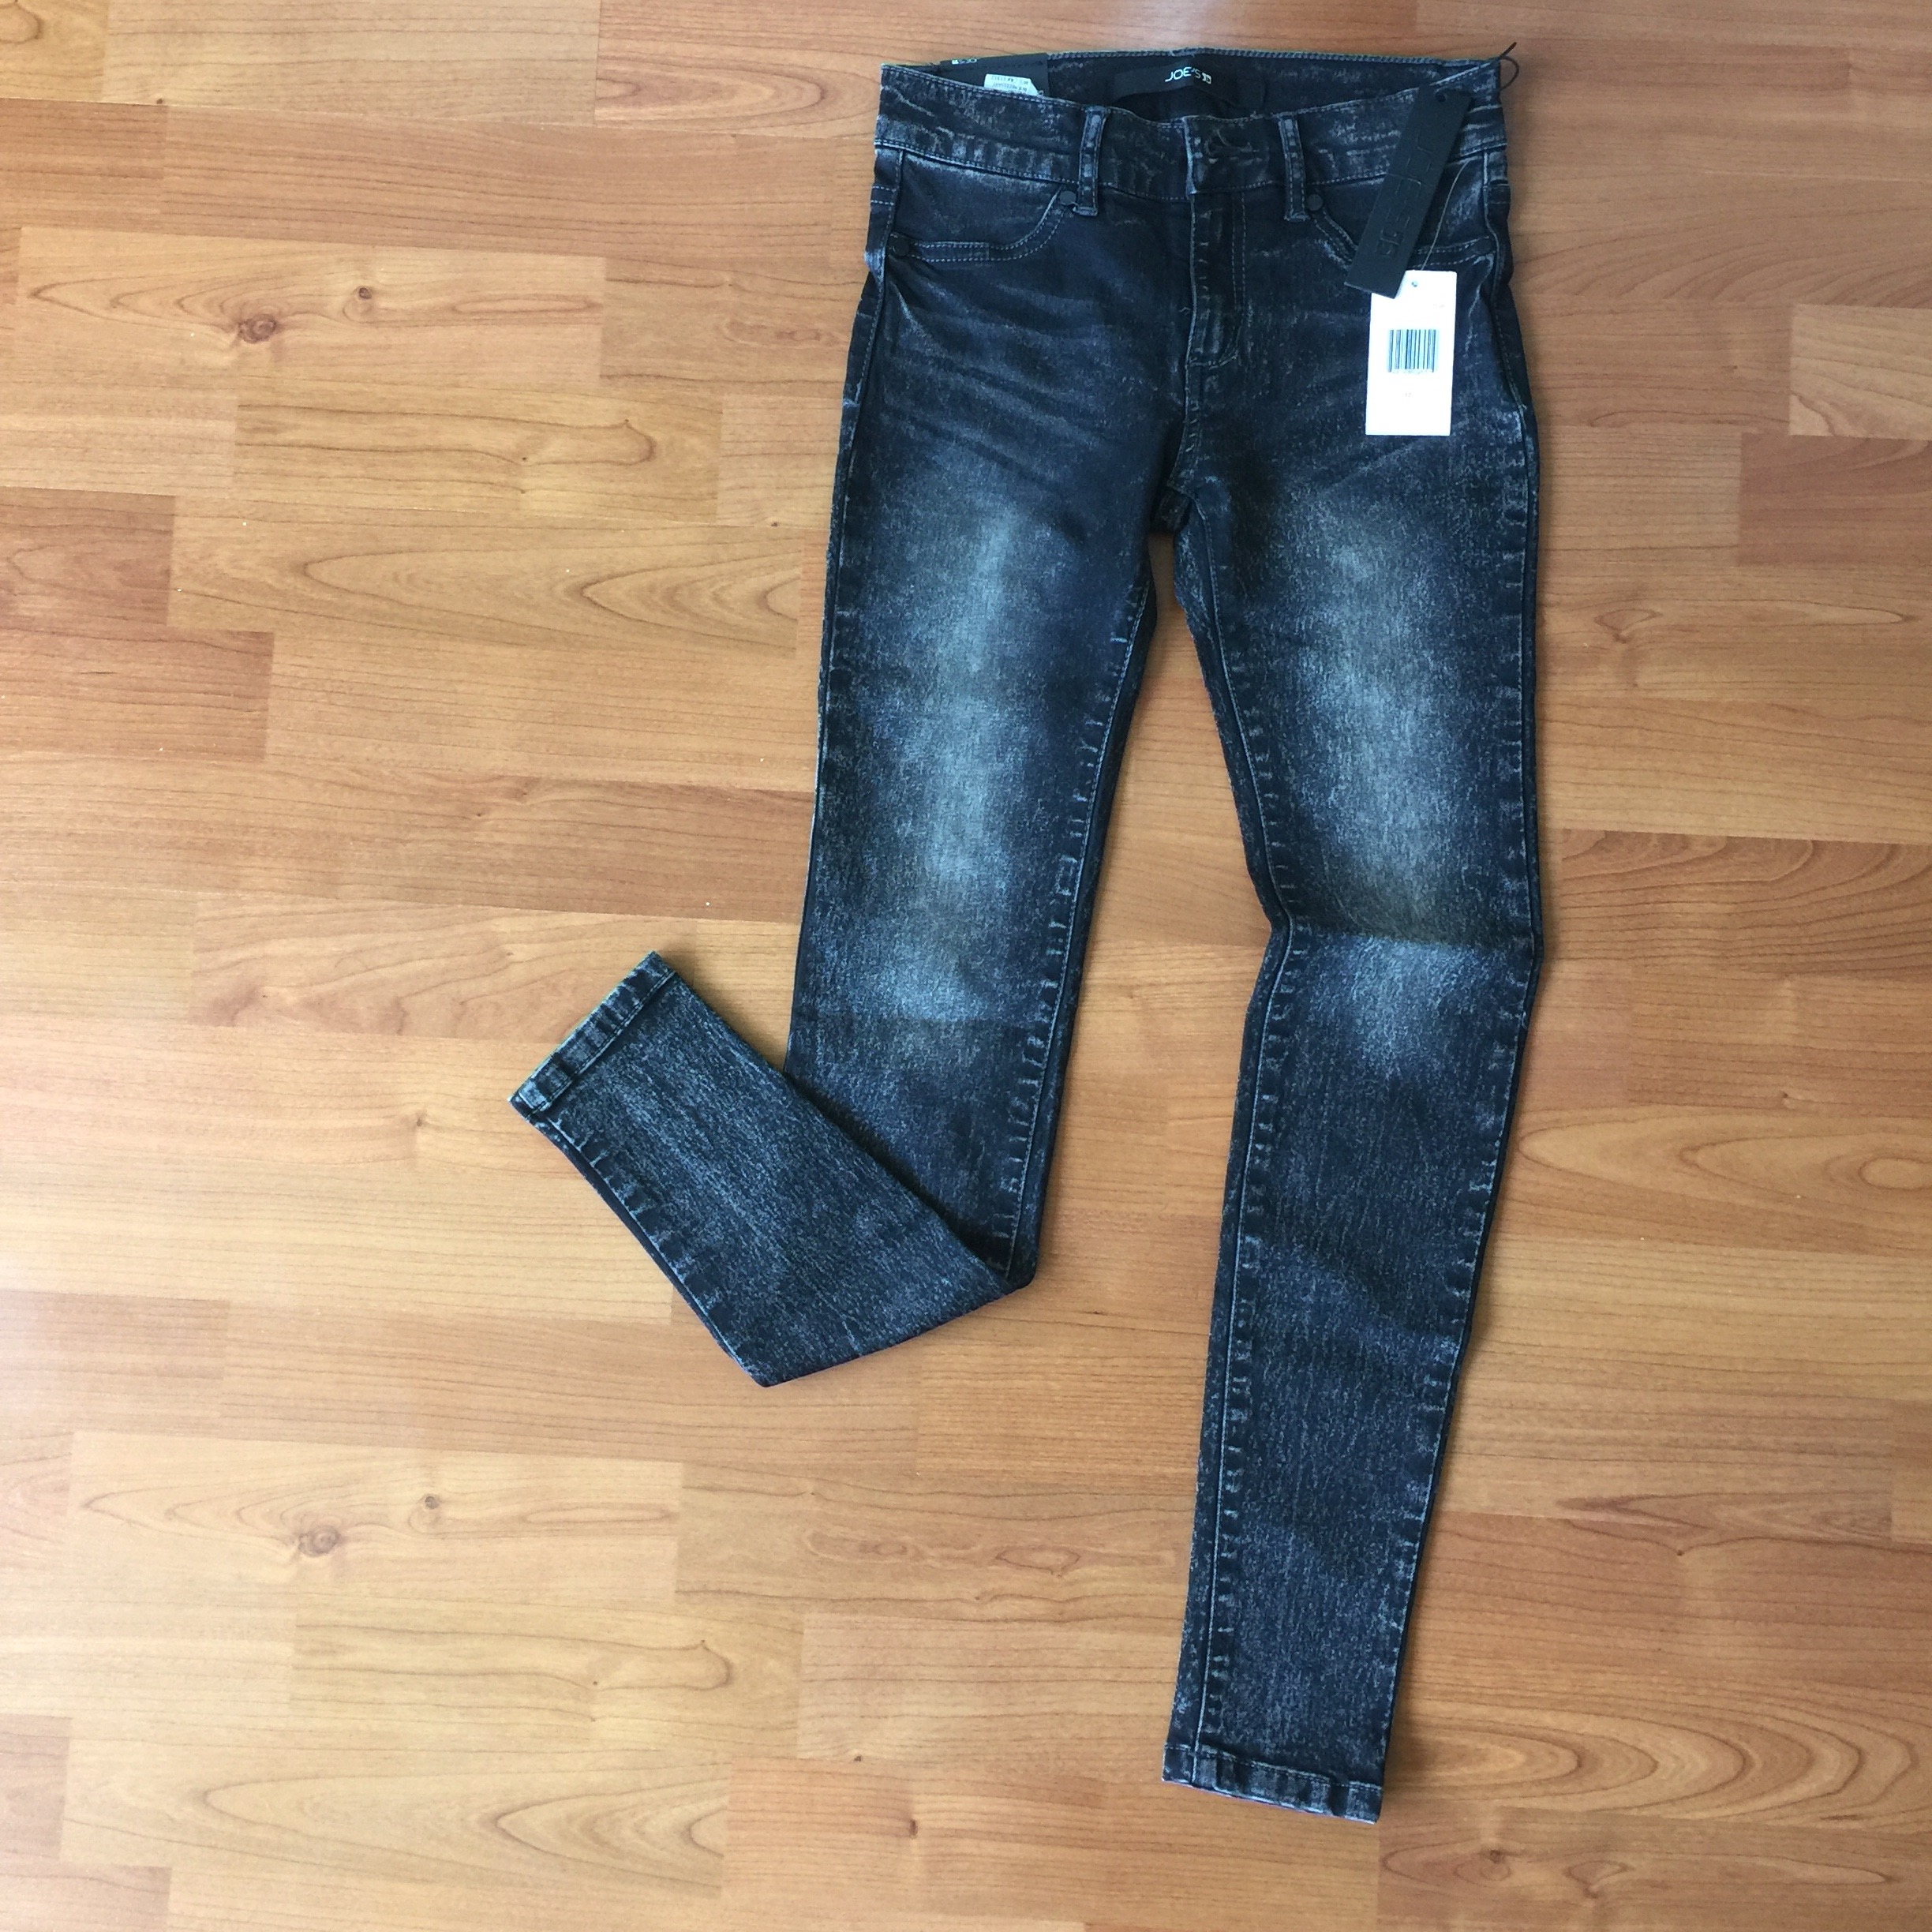 5396a7cd3 Joe's Jeans: Girl's Denim Jeans (Black) on Storenvy